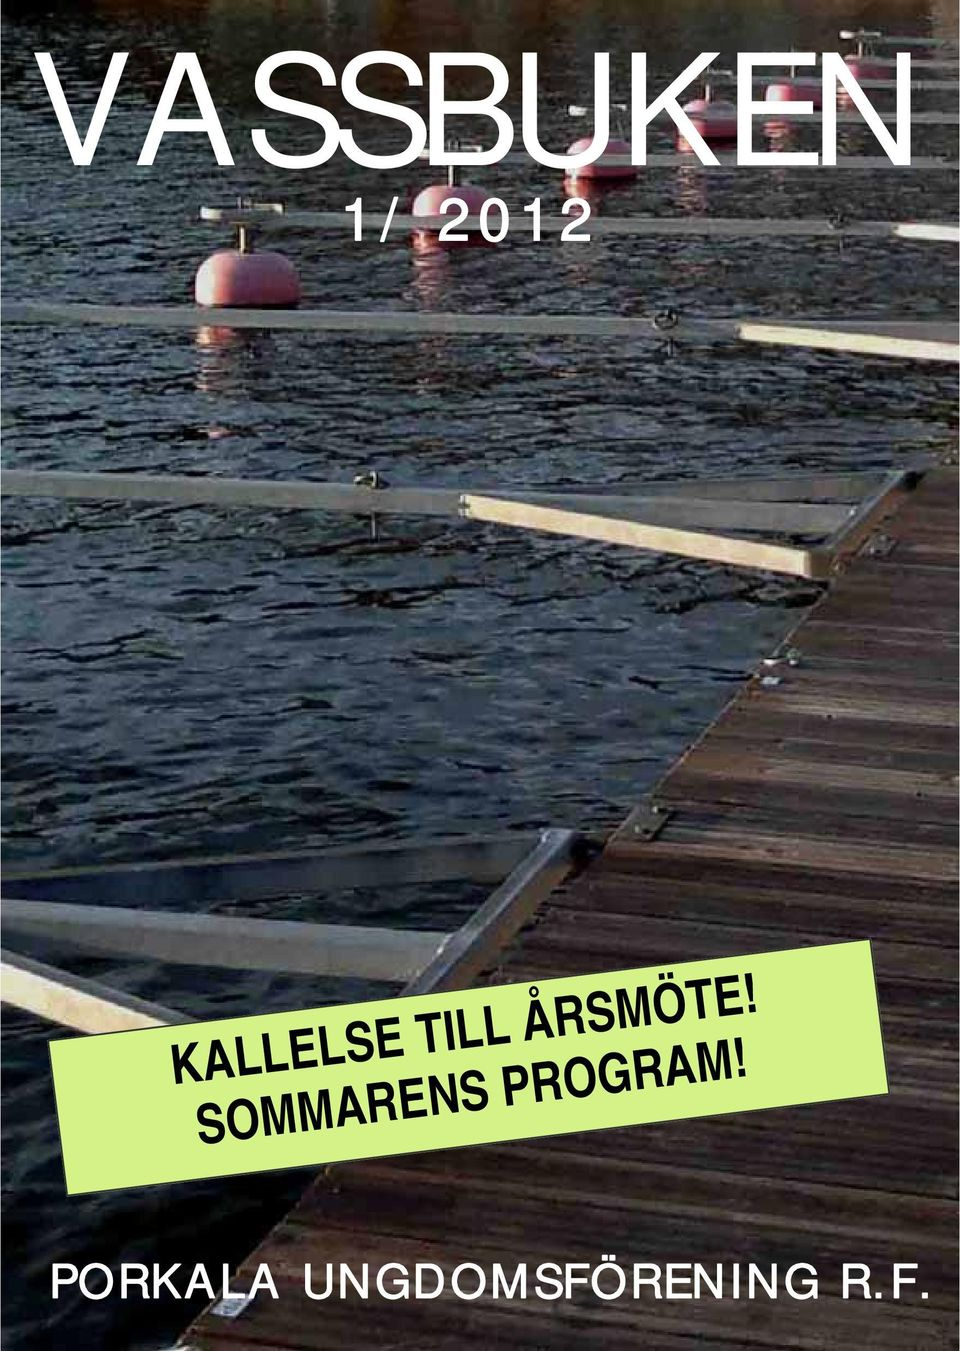 SOMMARENS PROGRAM!